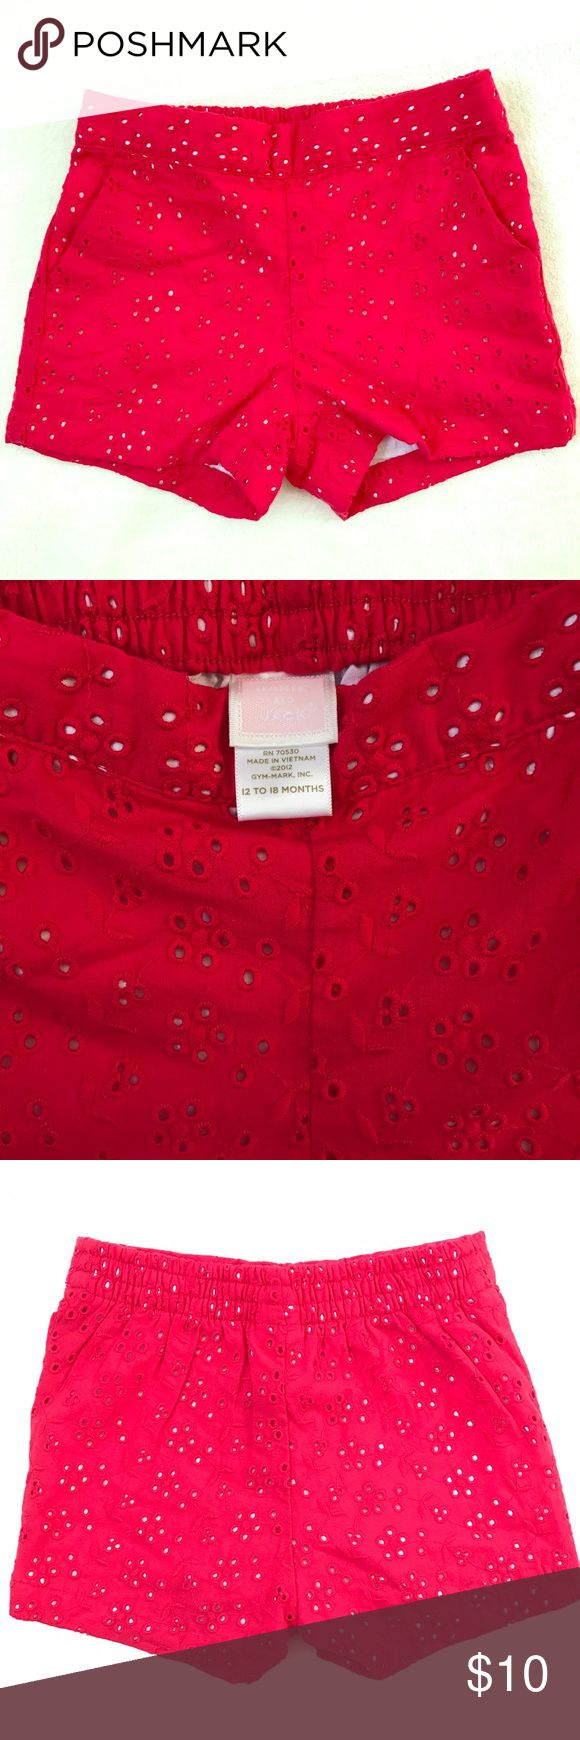 Janie and Jack Red Eyelet Shorts Janie and Jack Red Eyelet shorts. Never worn, in perfect condition! Size 12-18 Months, runs big. Janie and Jack Bottoms Shorts